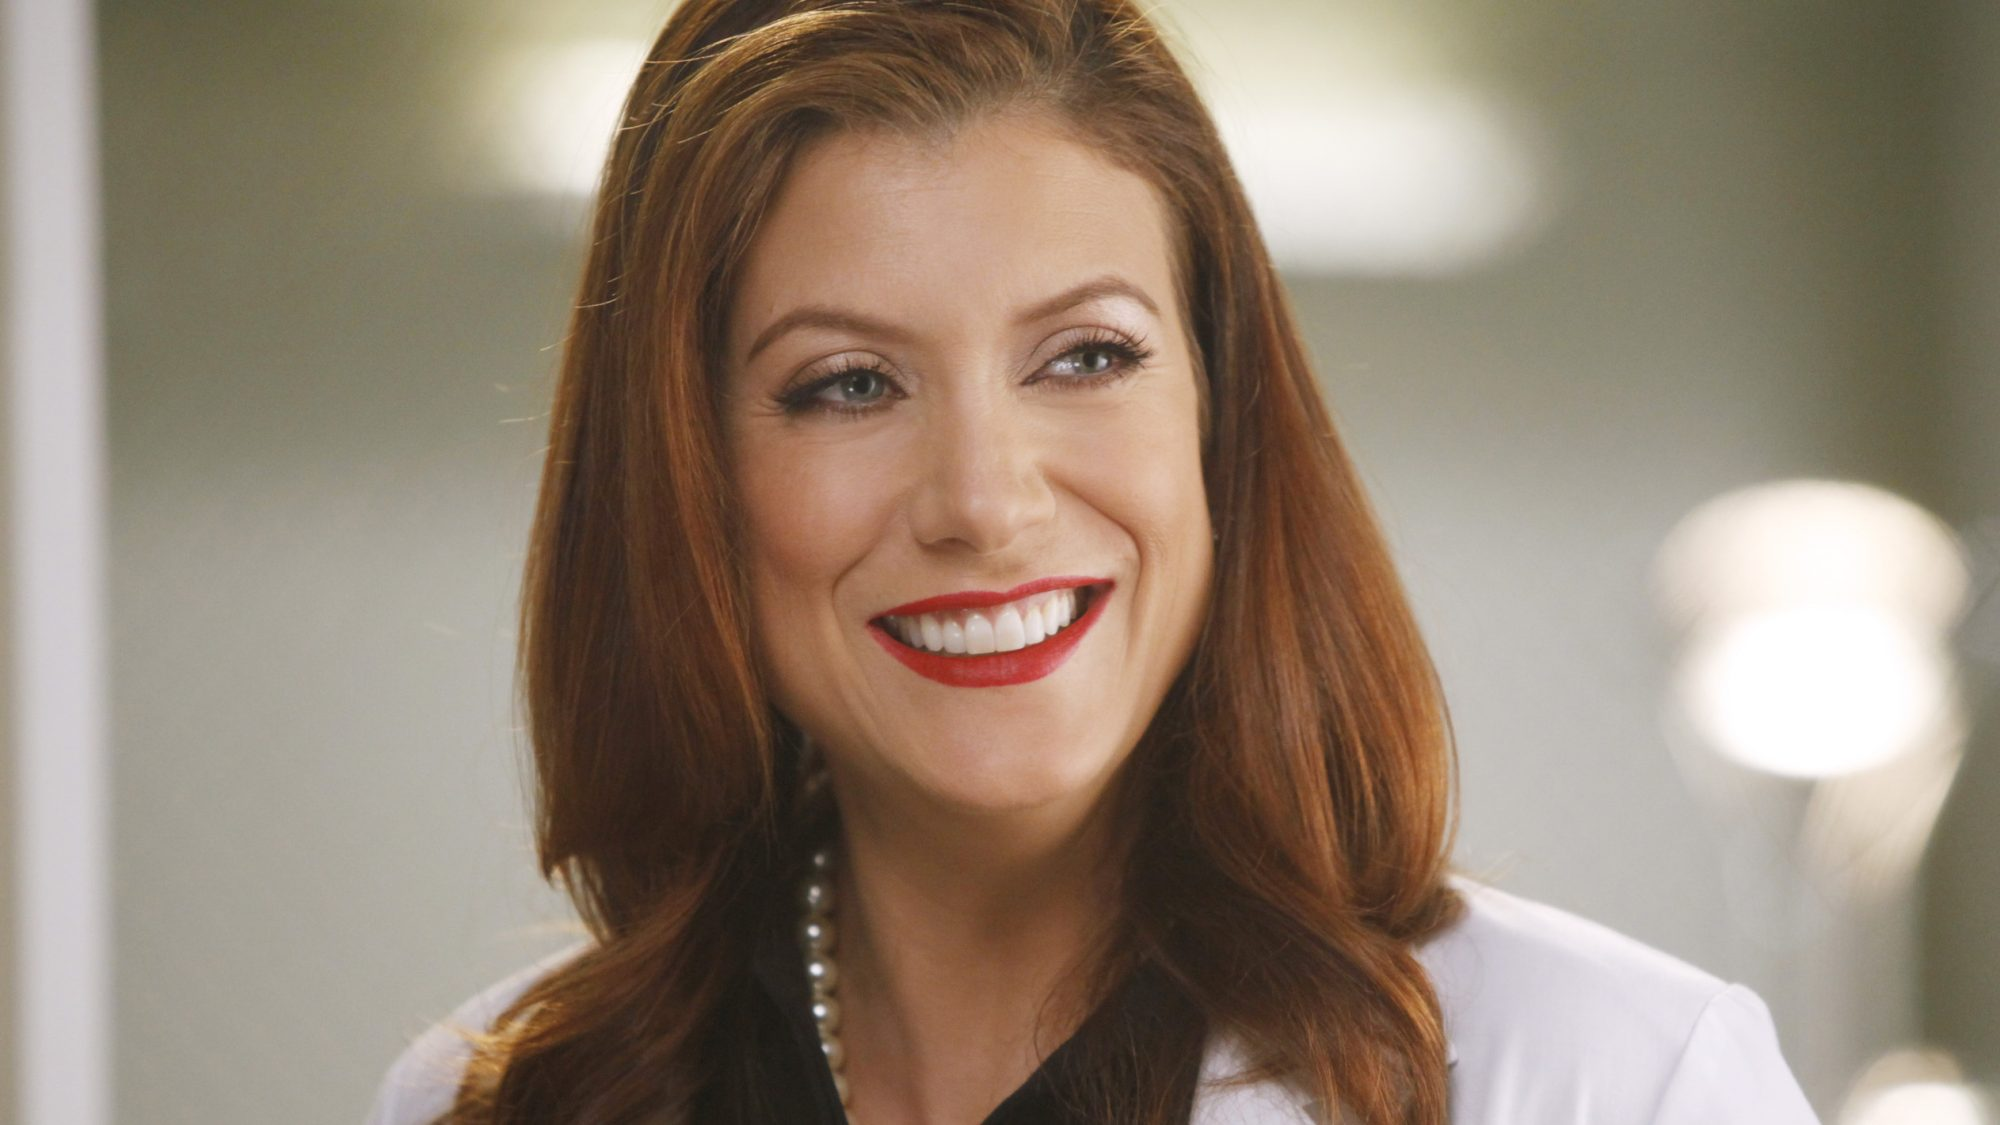 Kate Walsh as Dr. Addison Montgomery